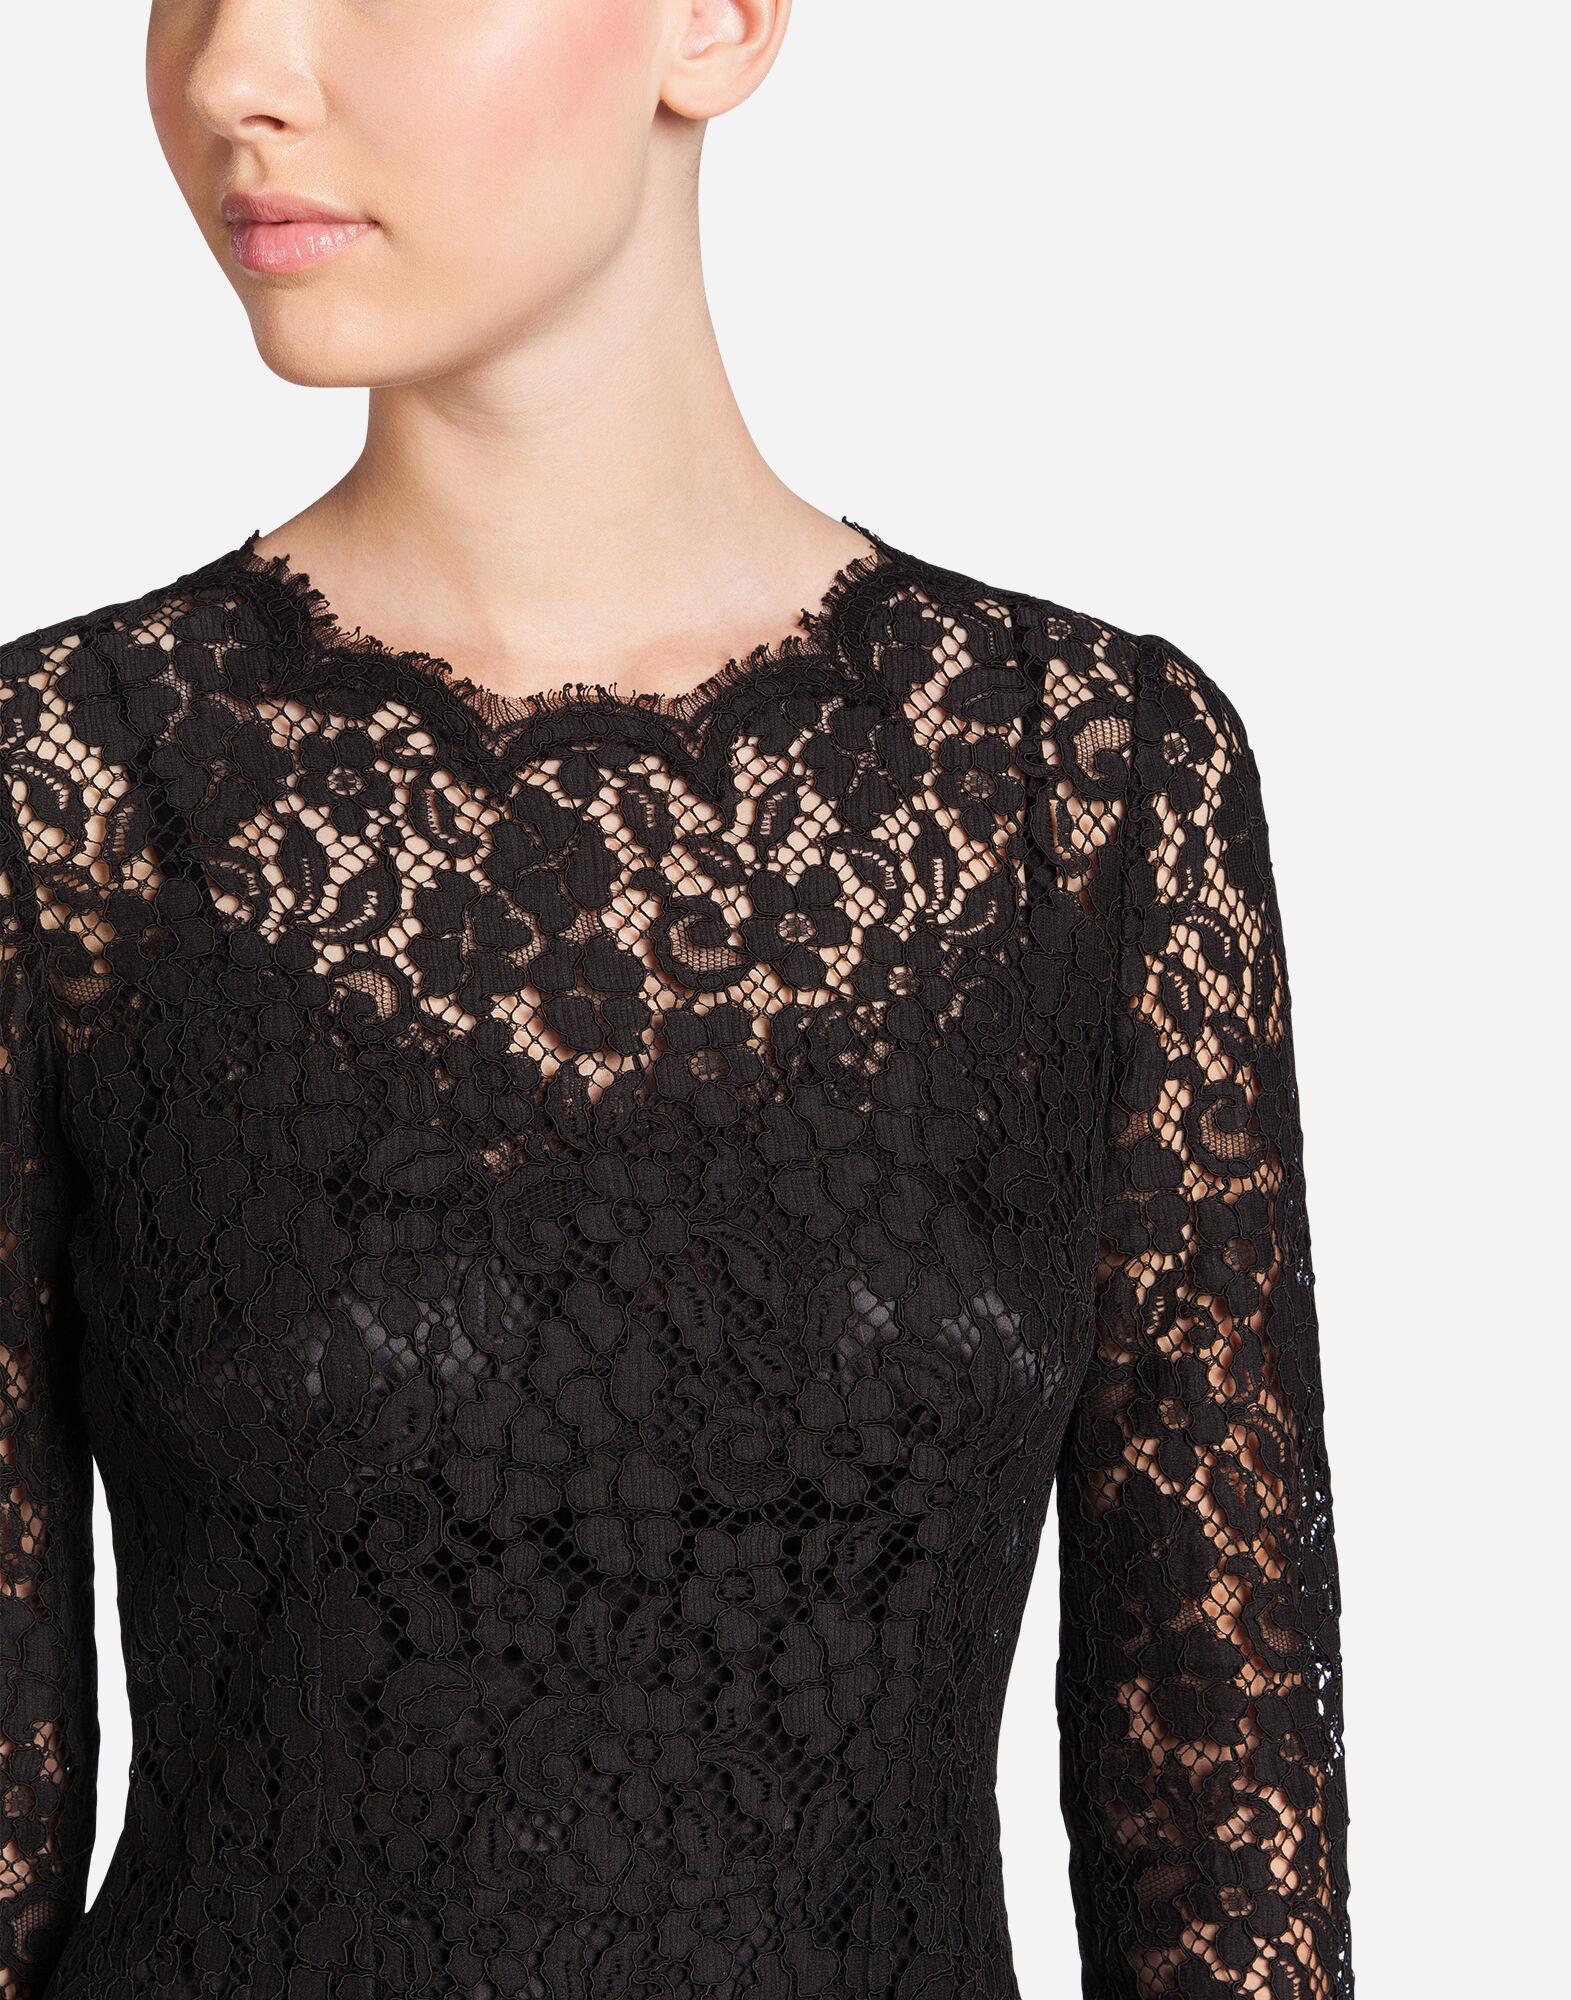 CORDONETTO LACE SHEATH DRESS